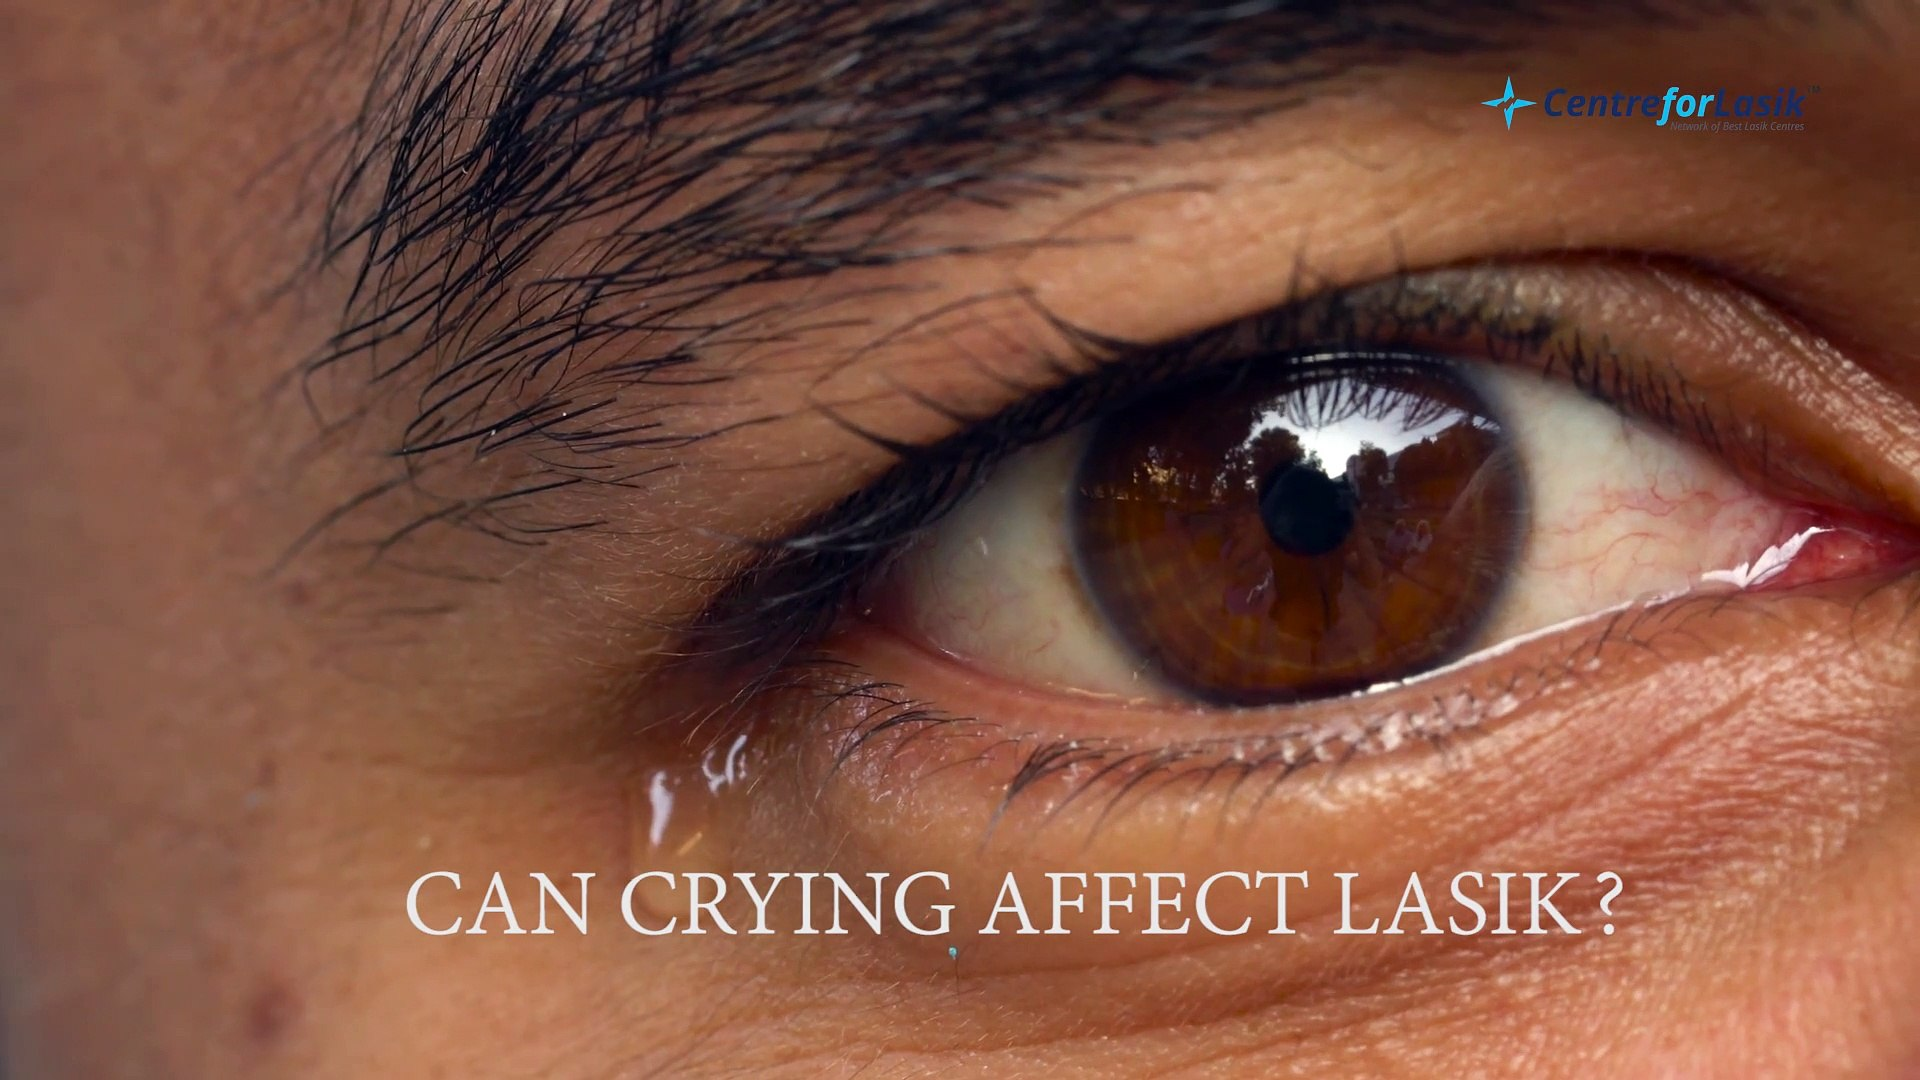 Is Crying Harmful After Lasik Eye Surgery Video Dailymotion